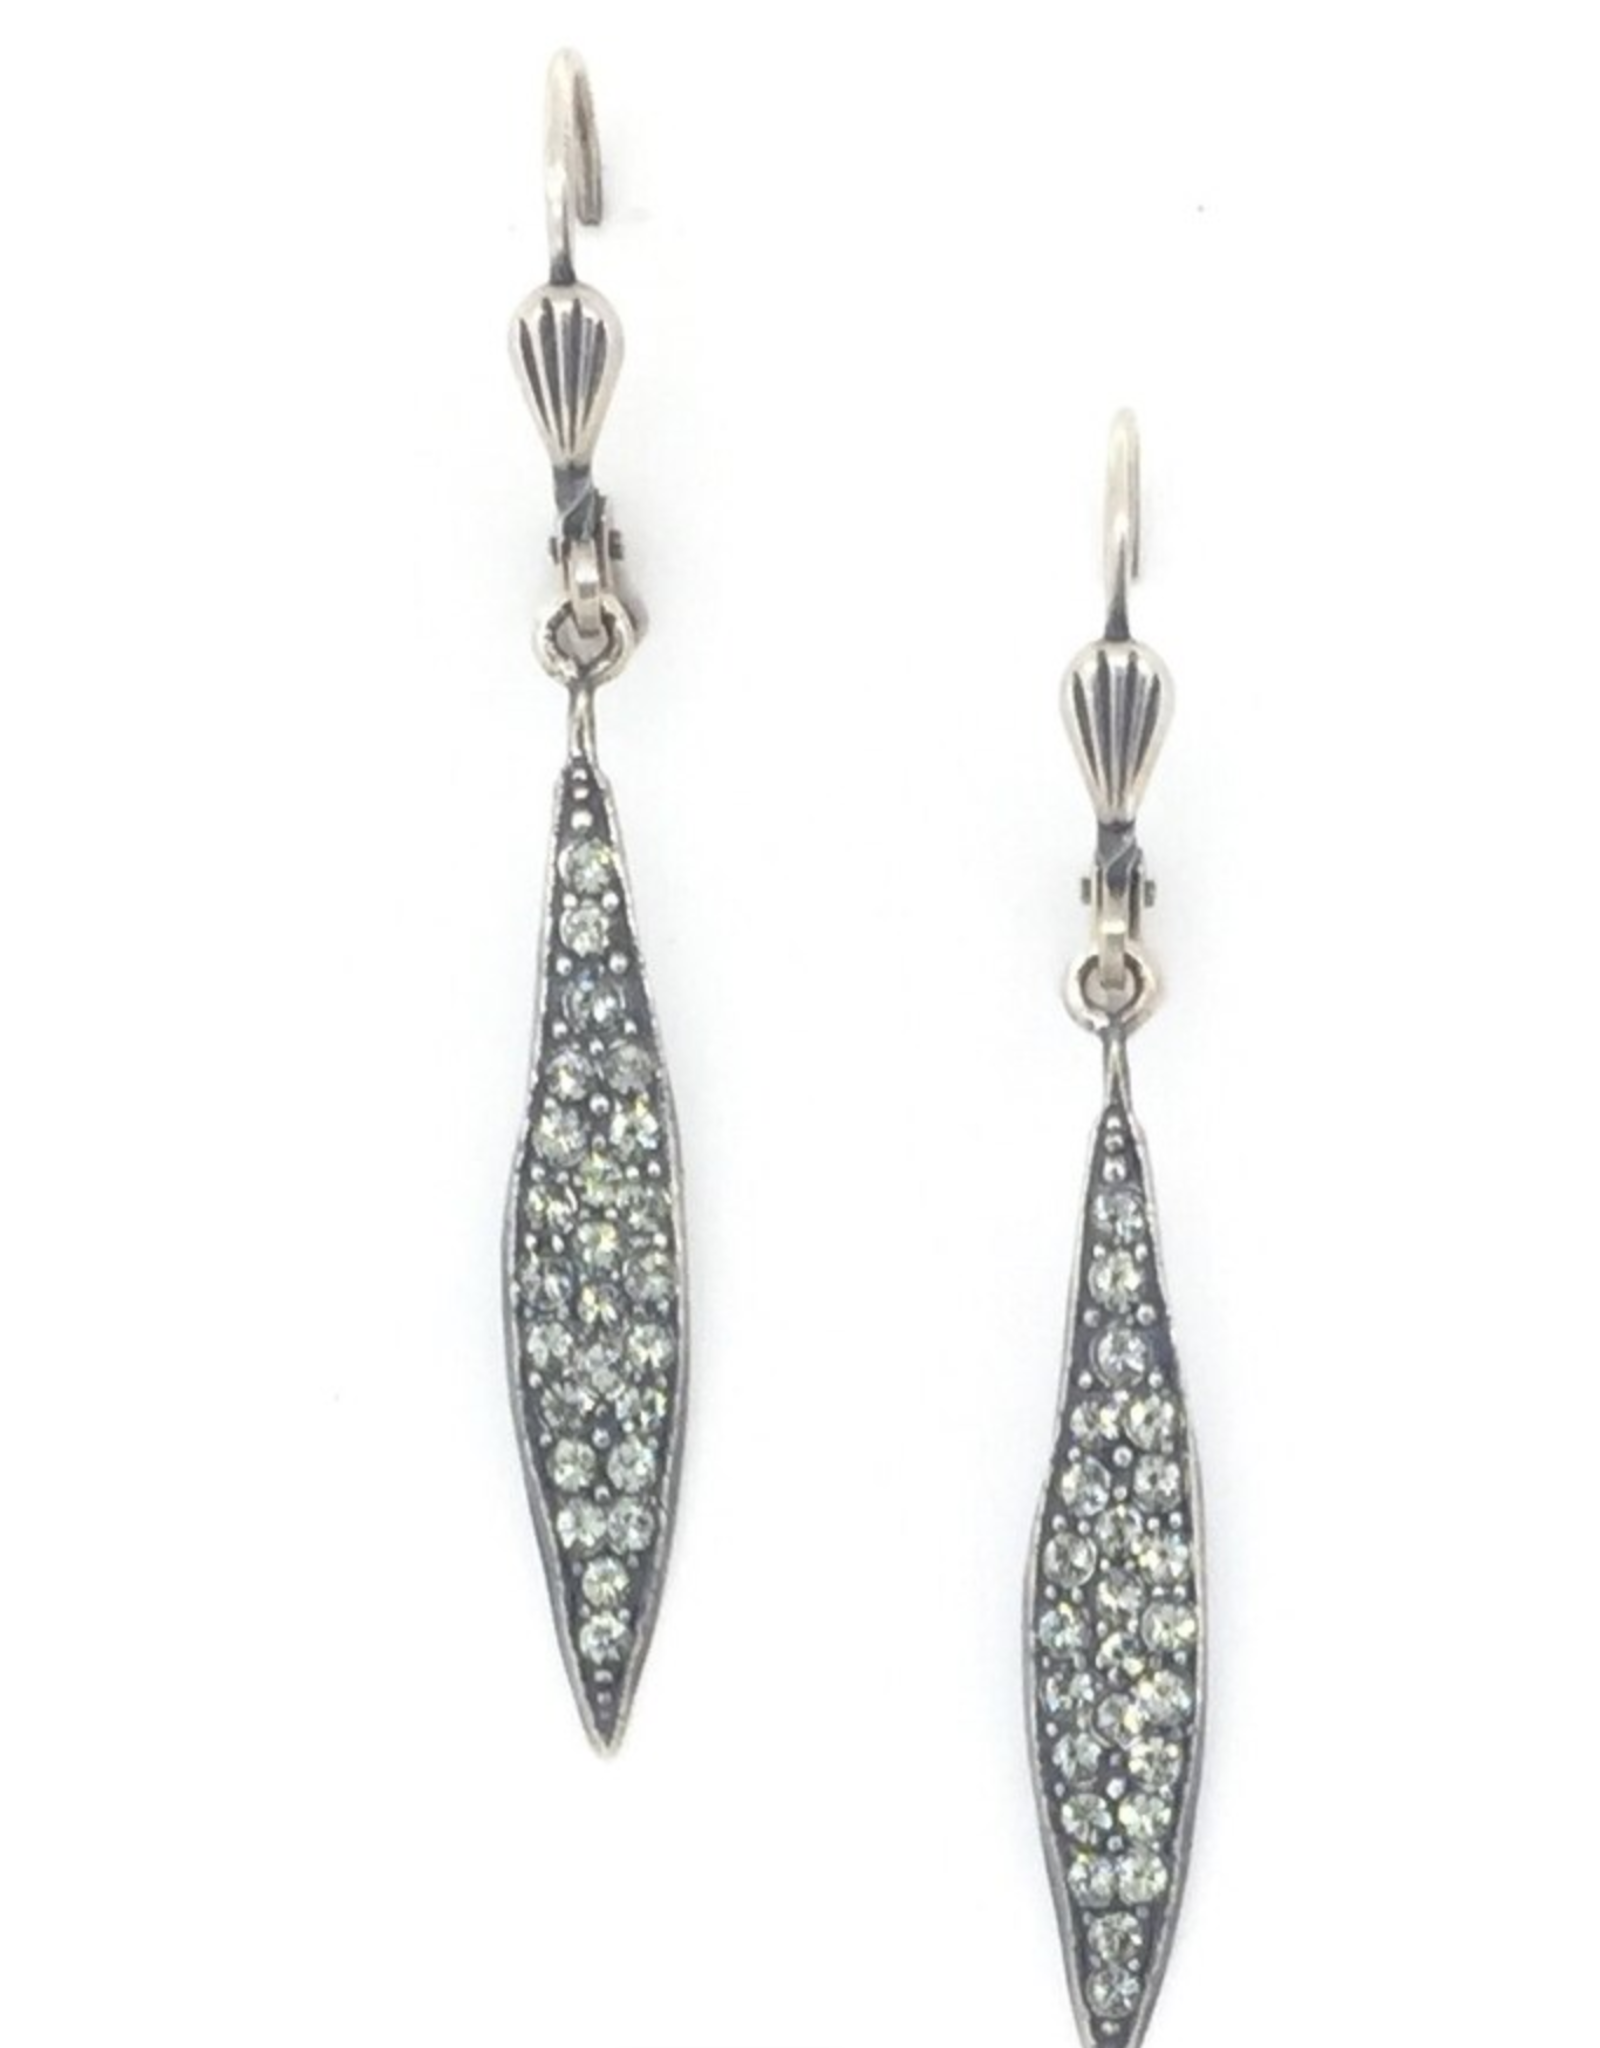 EARRING SPEAR WITH CRYSTALS ON FRENCH HOOK SILVER